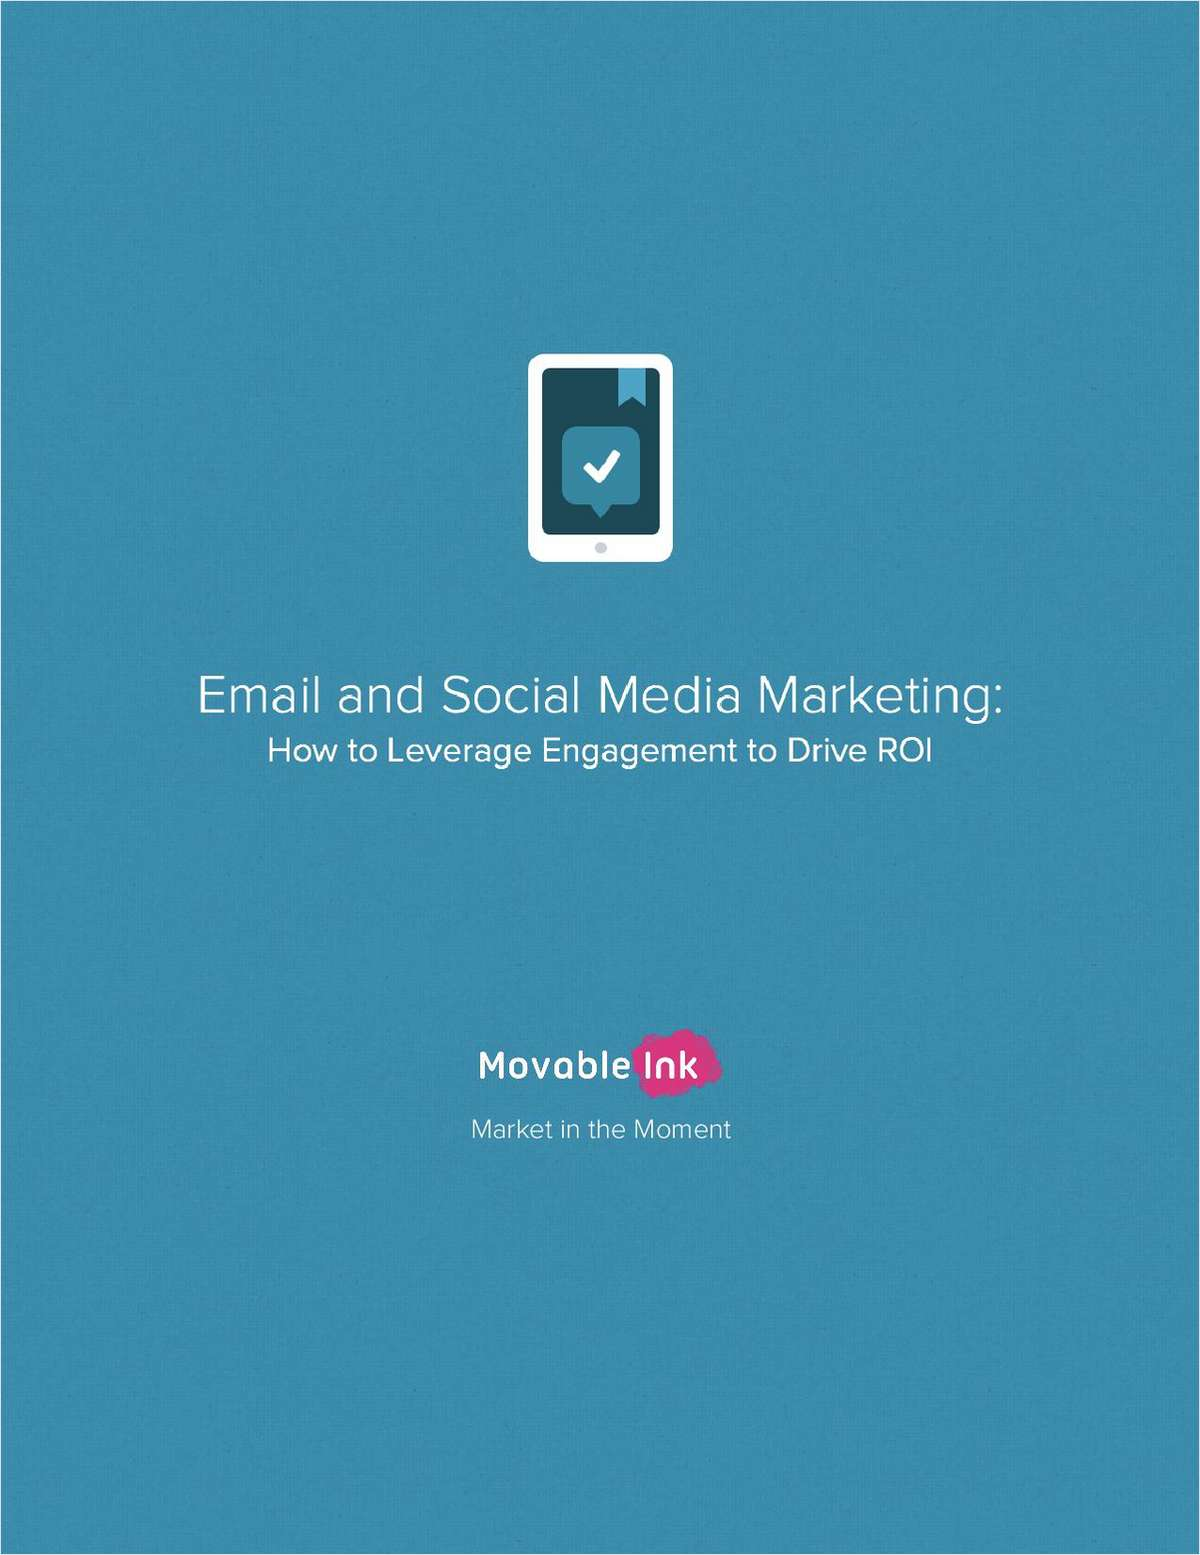 Email and Social Media Marketing: How to Leverage Engagement to Drive ROI